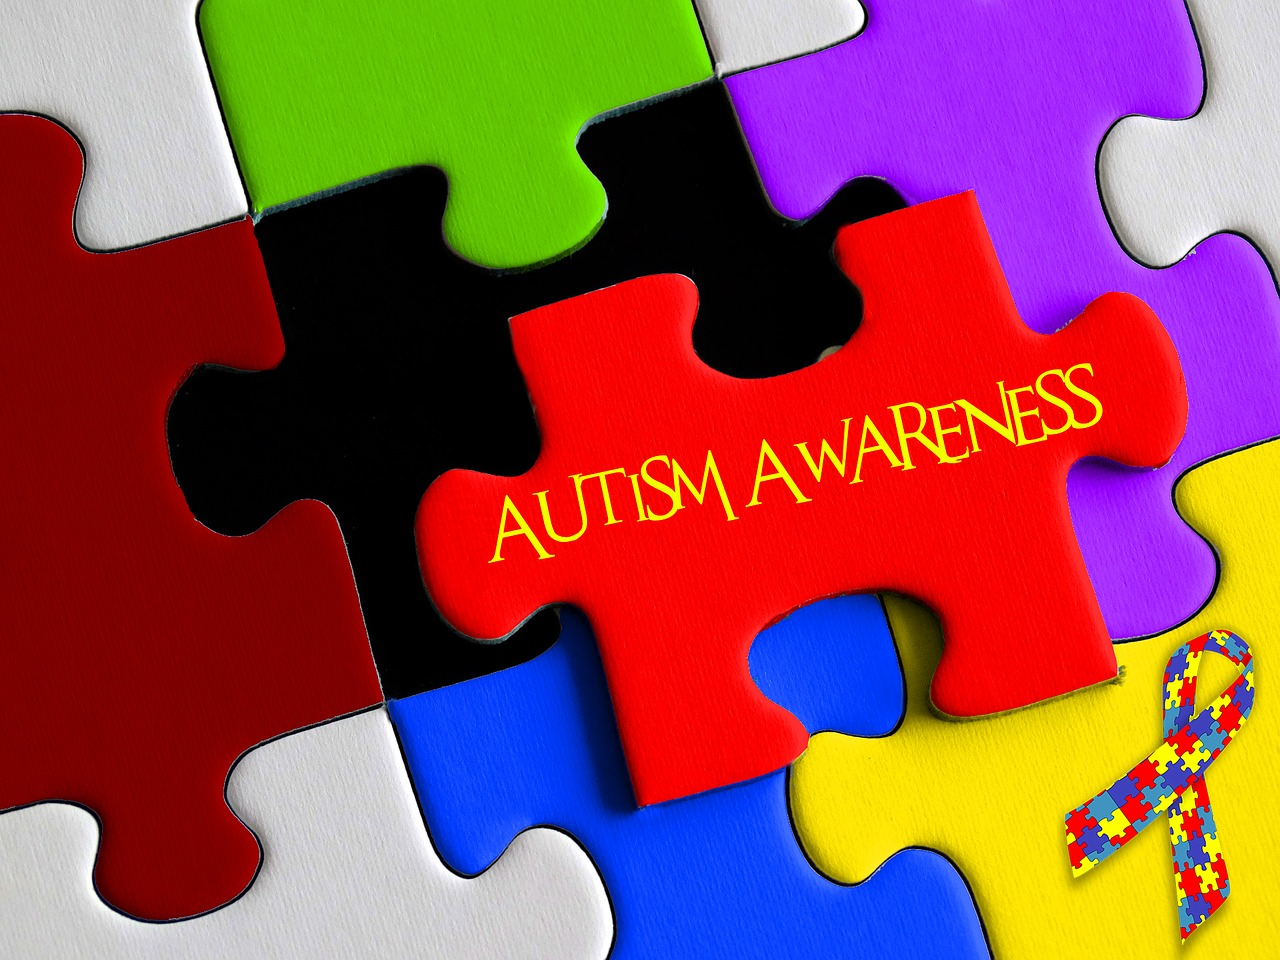 Inspiring Speakers for National Autism Awareness Month Events